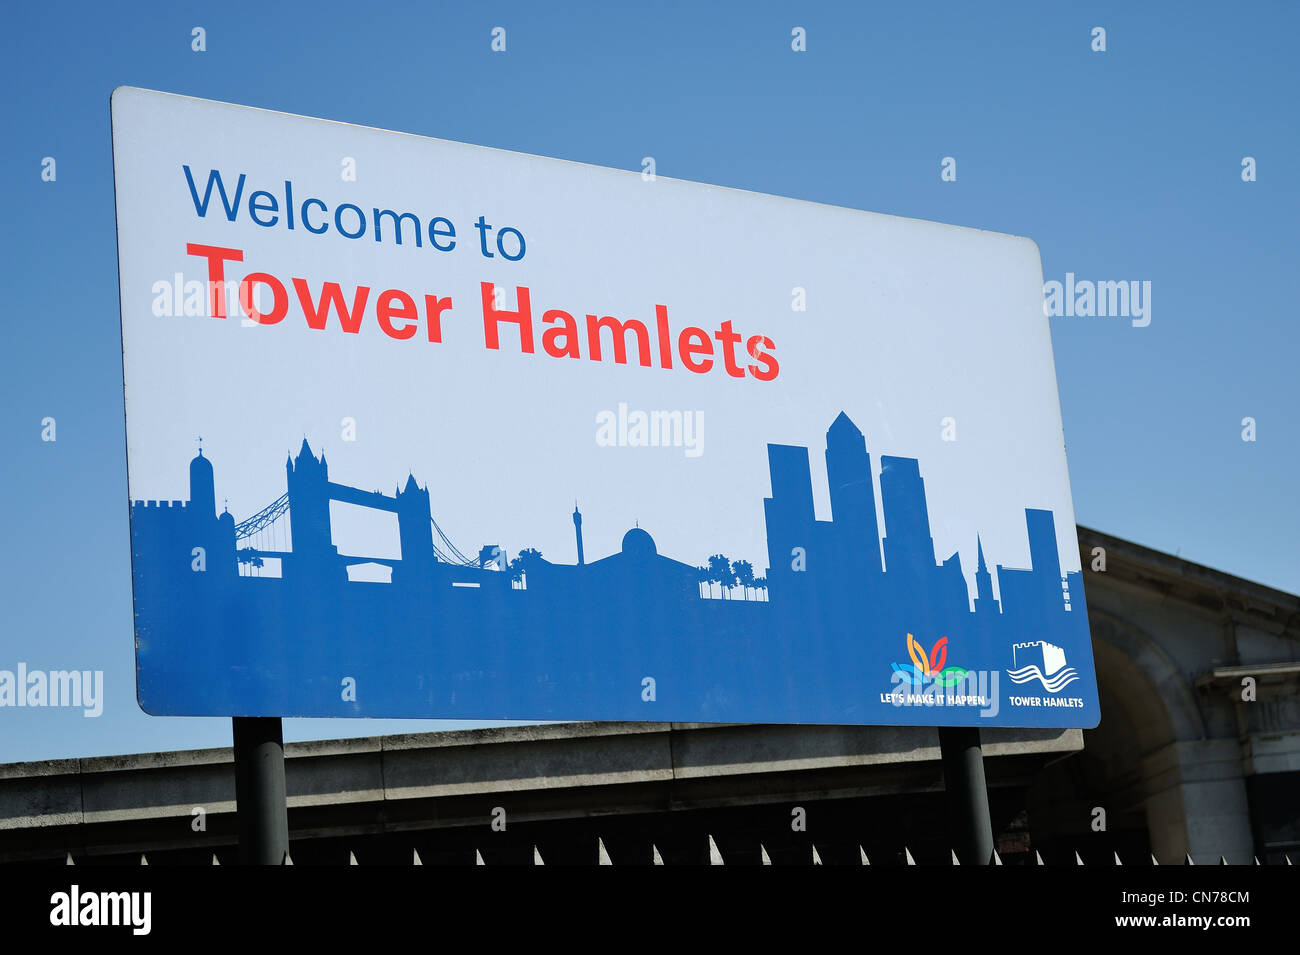 Welcome to Tower Hamlets Sign - Stock Image